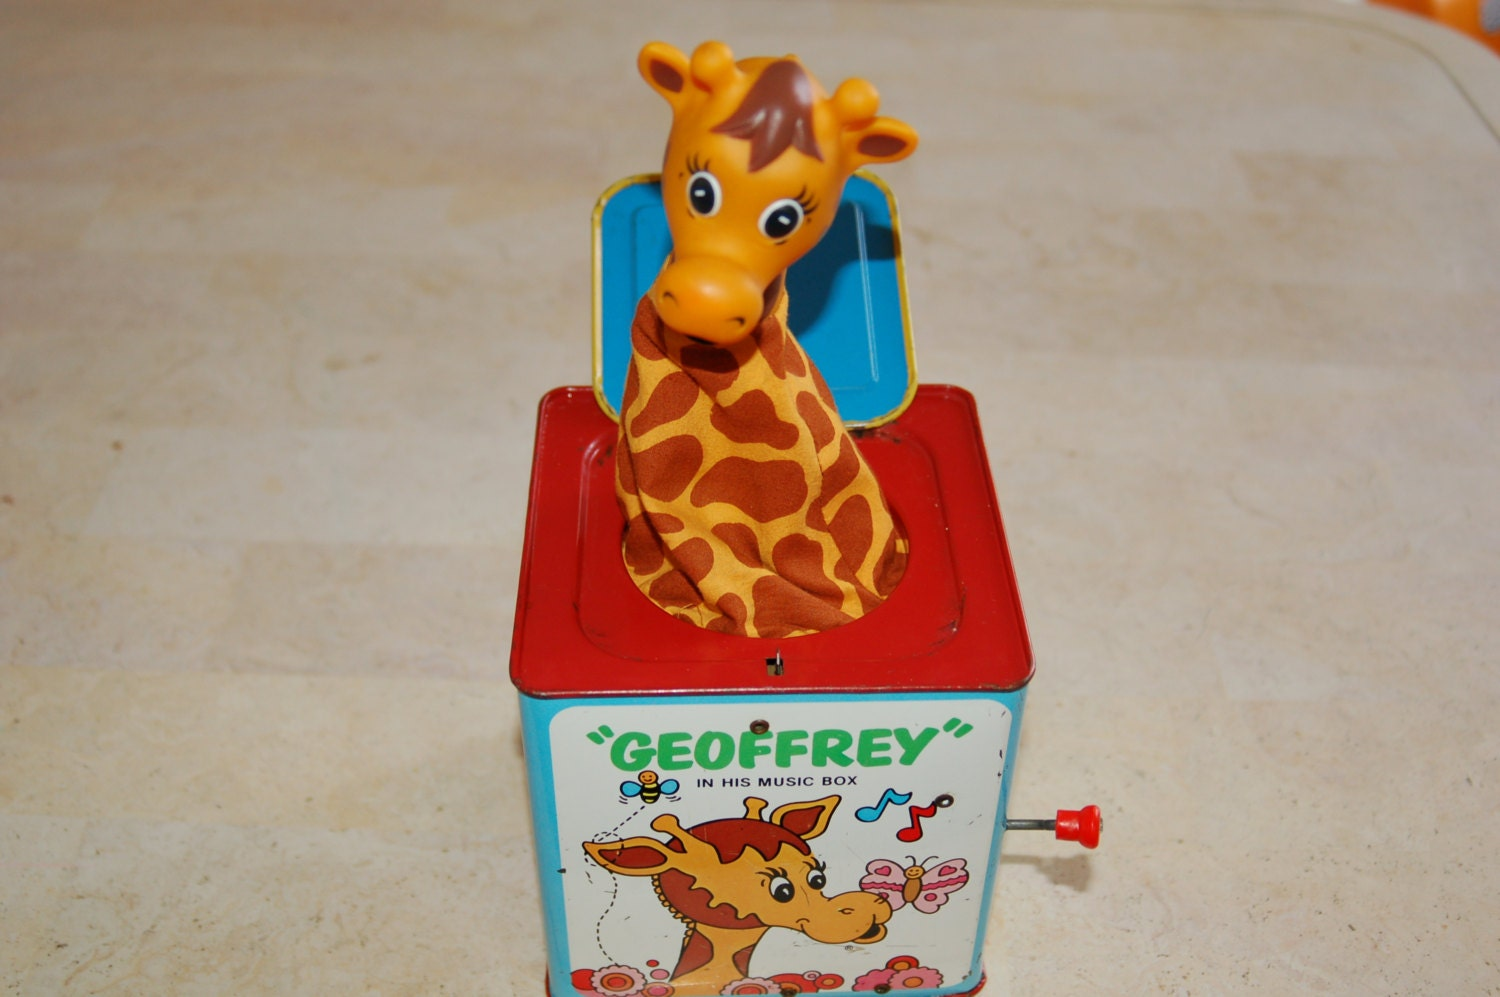 Old Toys From The 70s : Vintage s toys r us mattel geoffrey giraffe jack in the